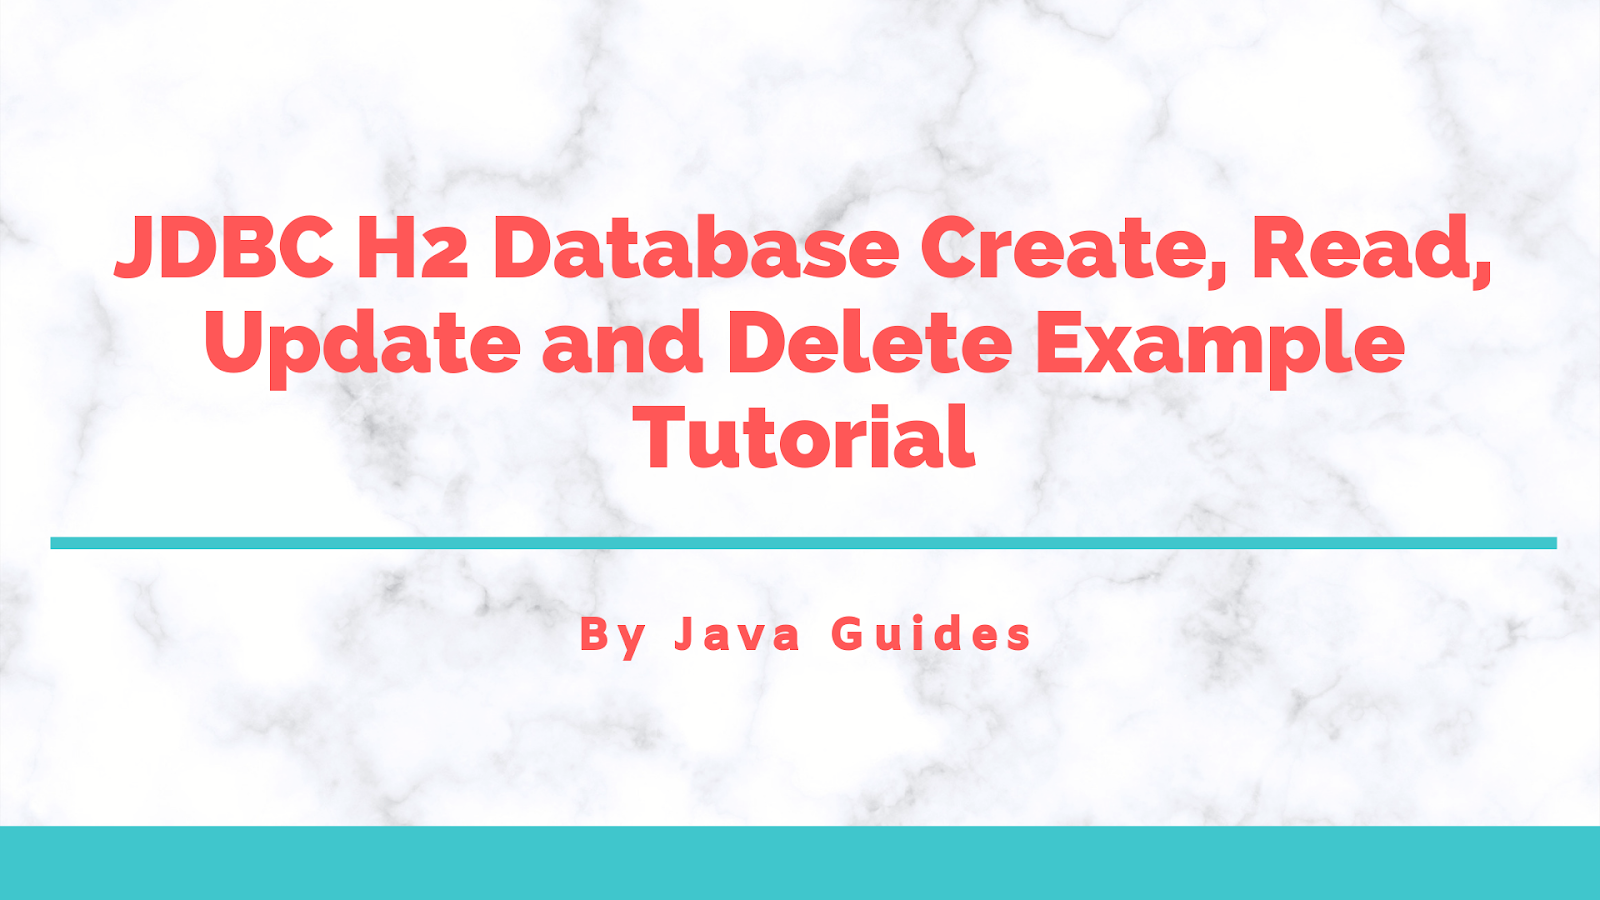 JDBC H2 Database Create, Read, Update and Delete Example